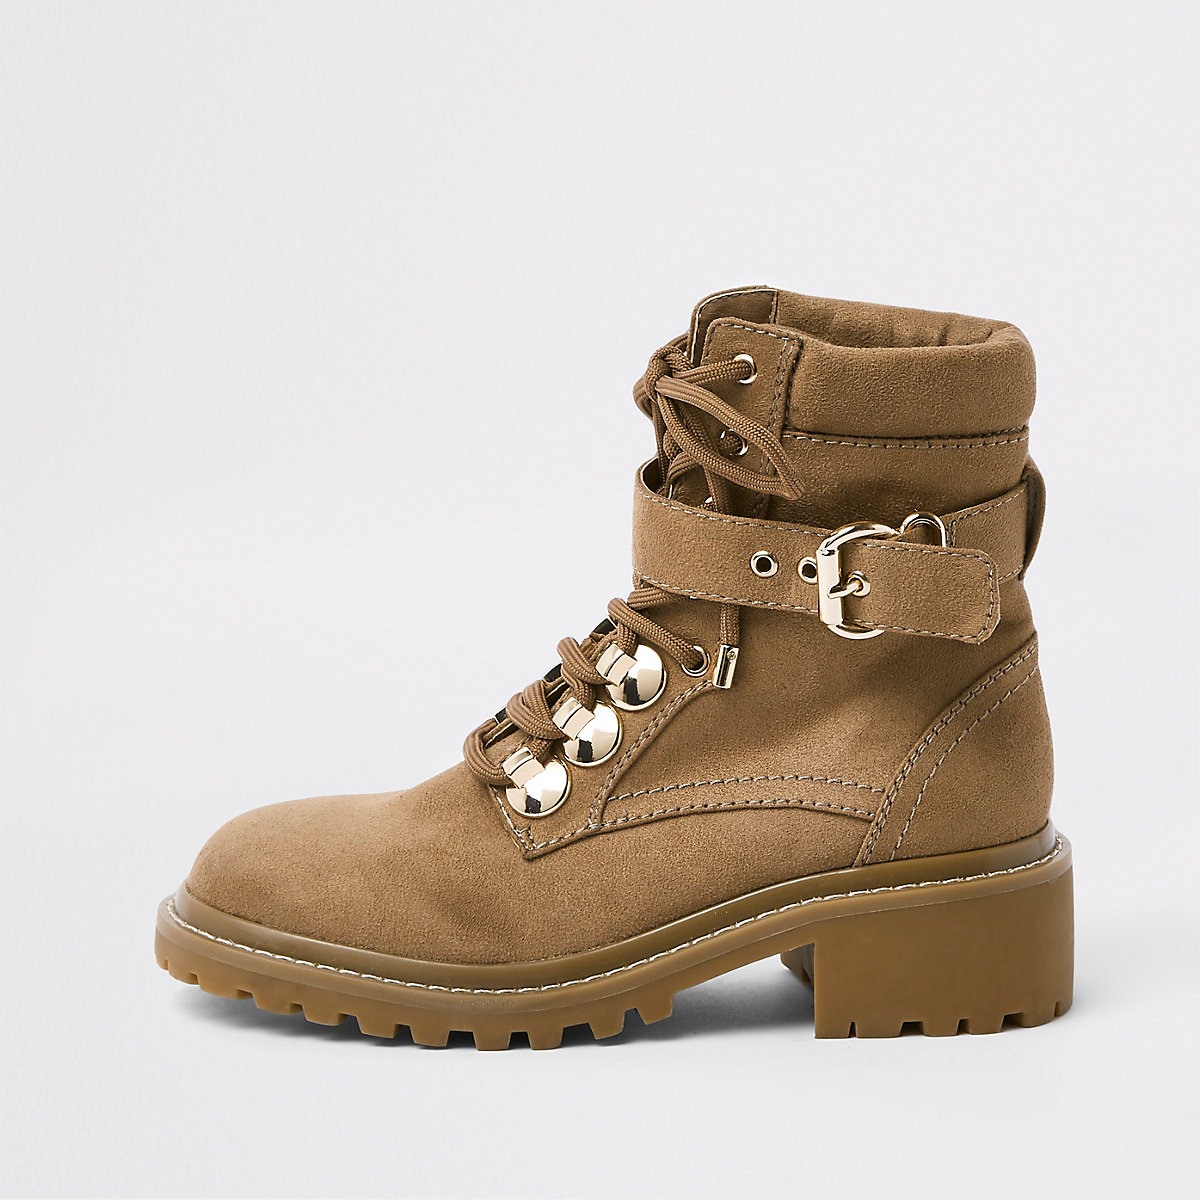 Beige faux suede lace-up hiking boots